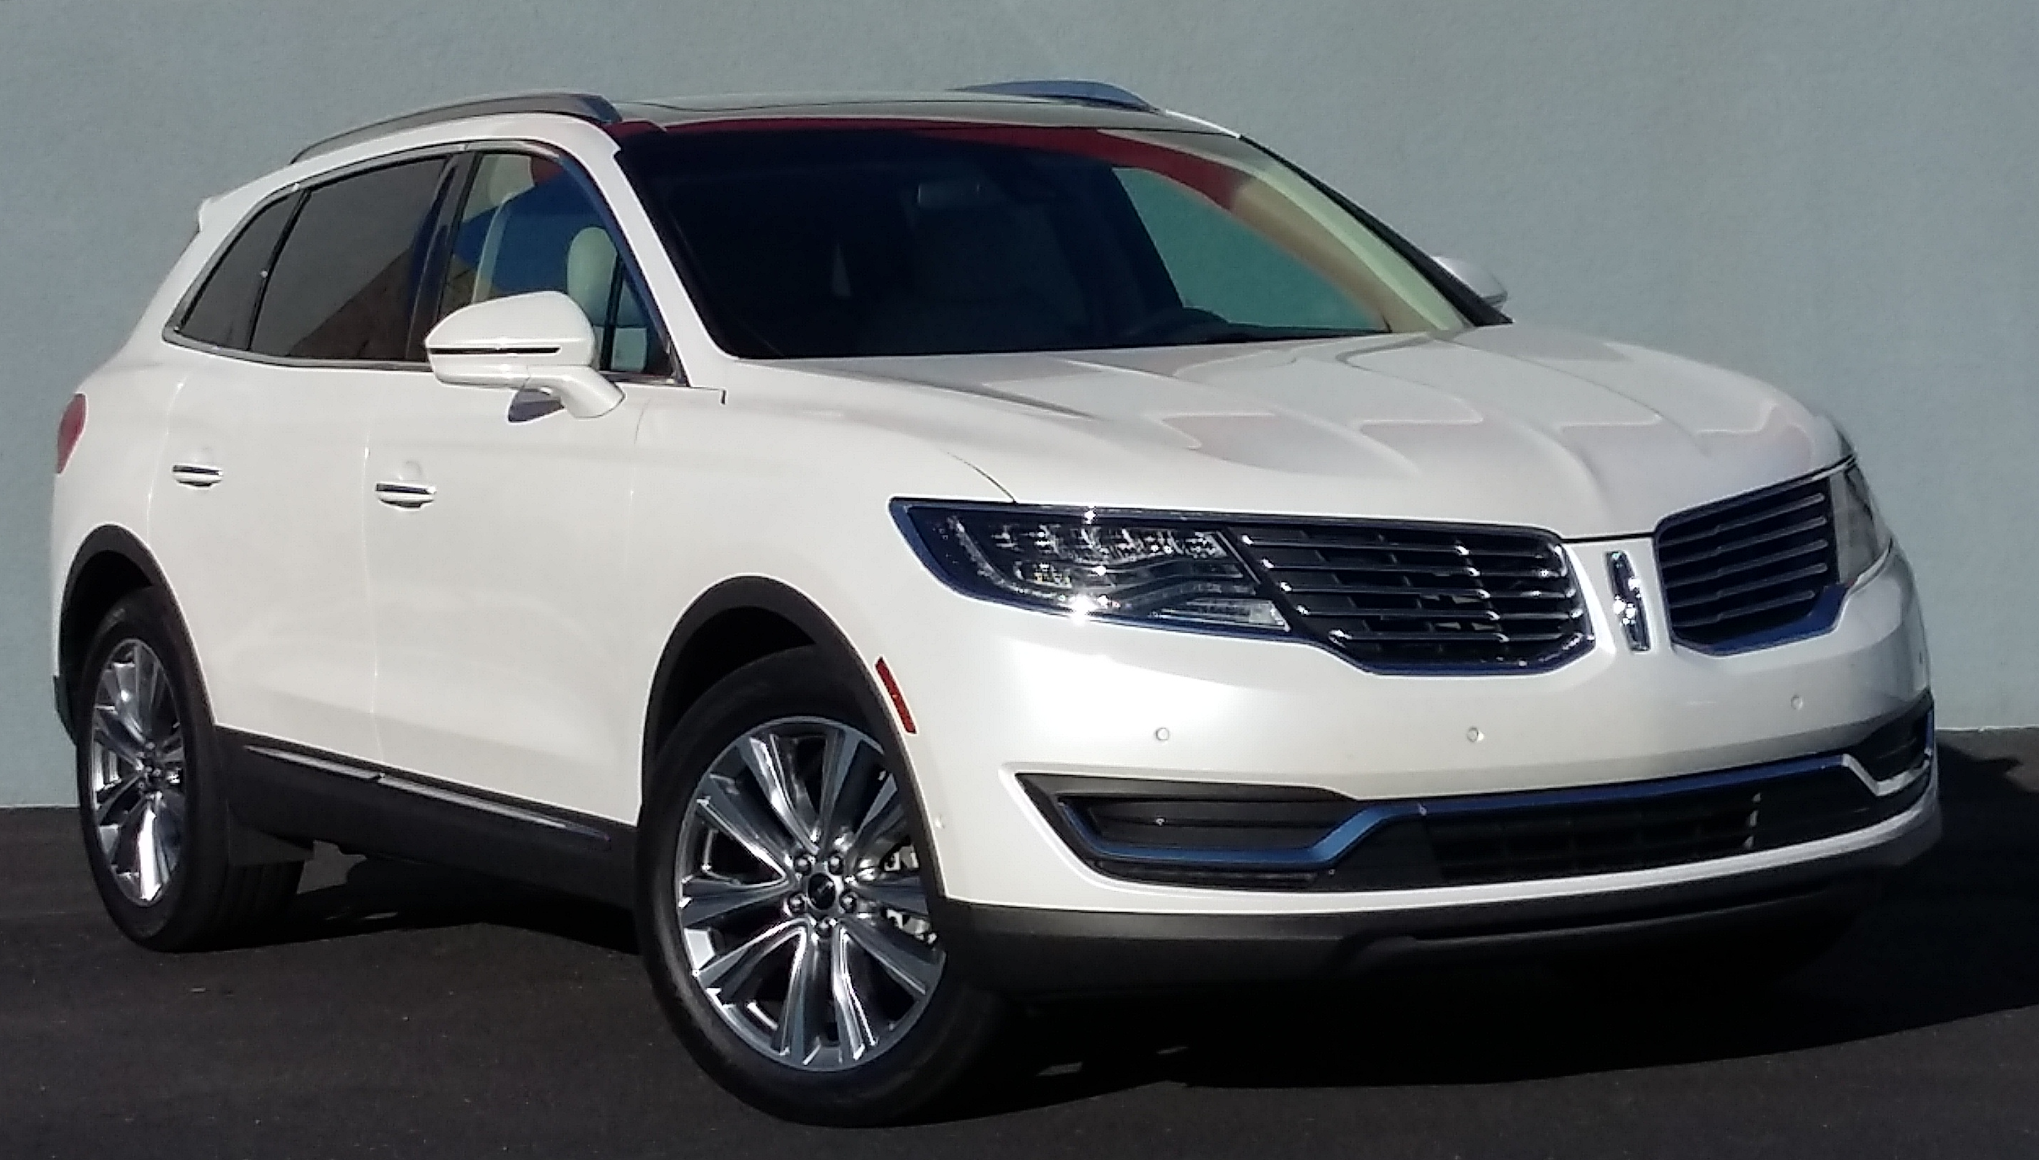 2016 Lincoln MKX The Daily Drive | Consumer Guide®